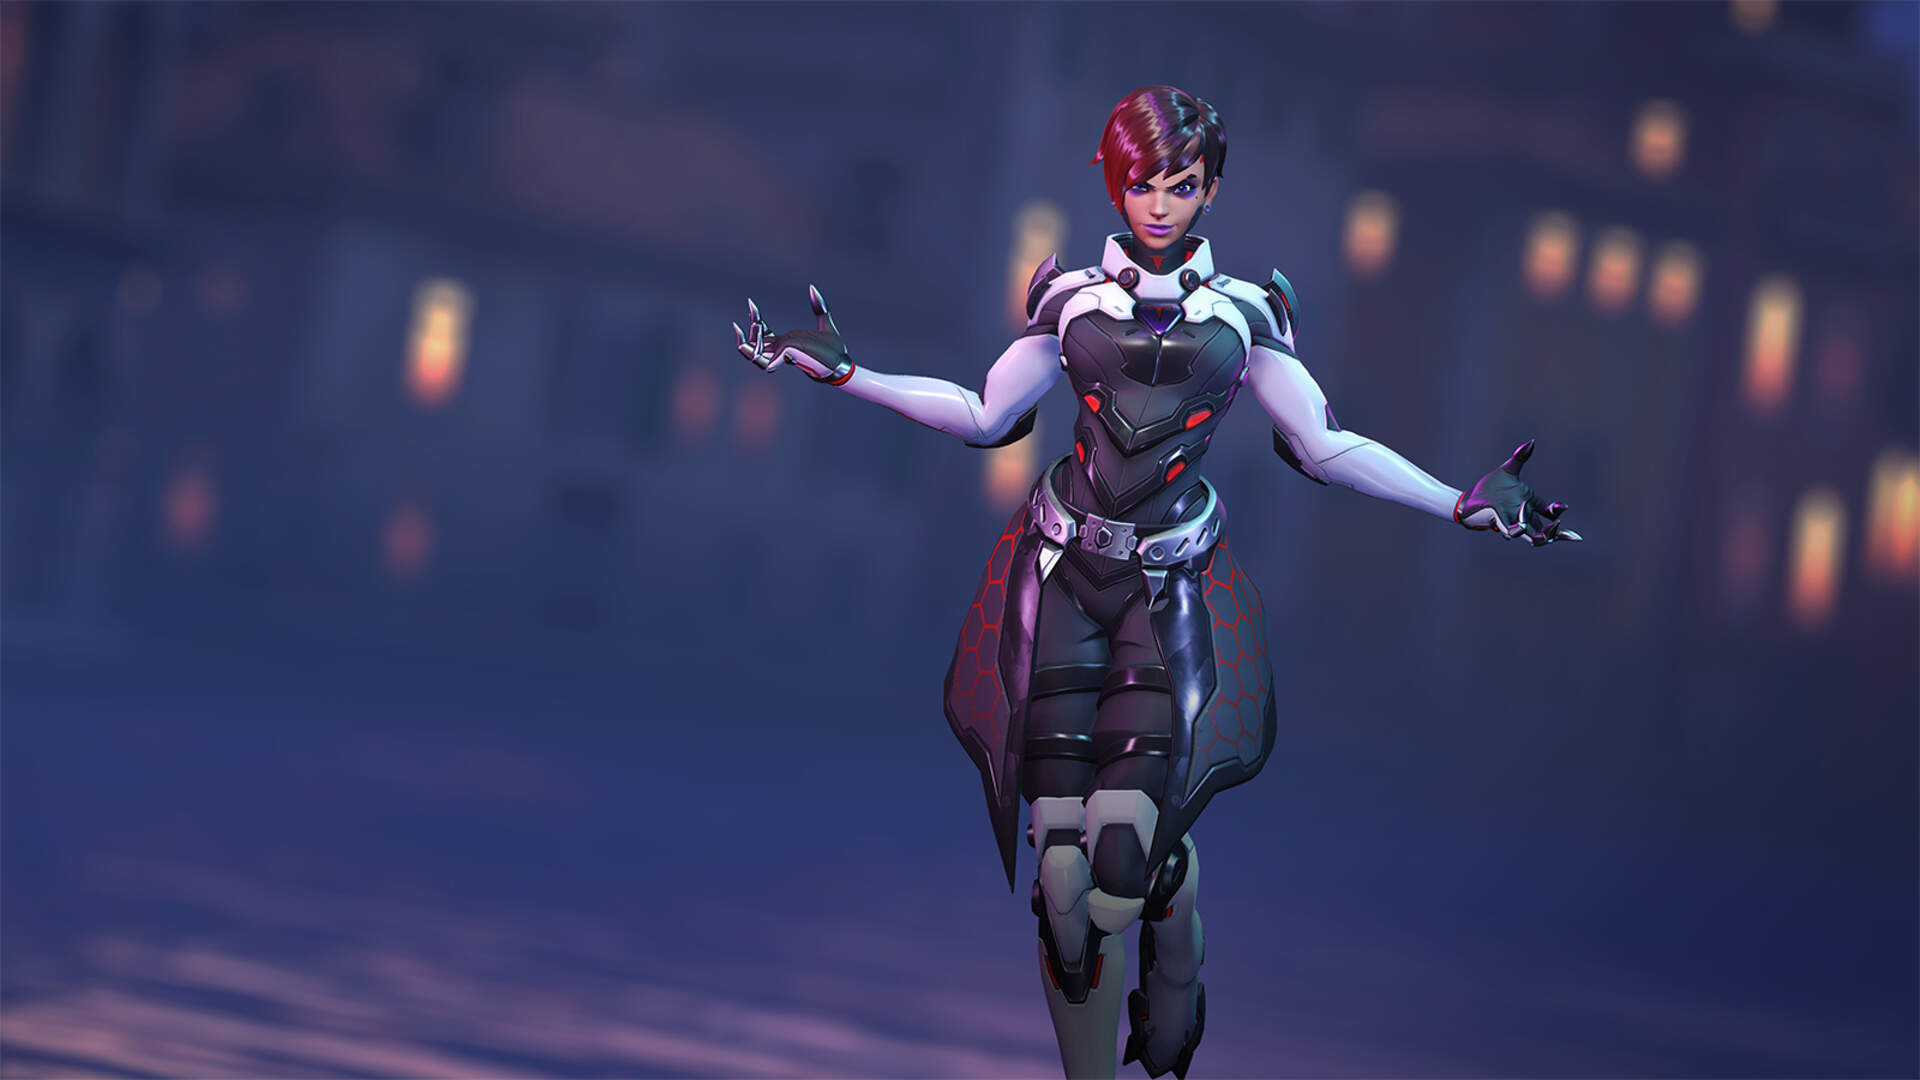 Overwatch: Storm Rising Event Teases a New Location and Character